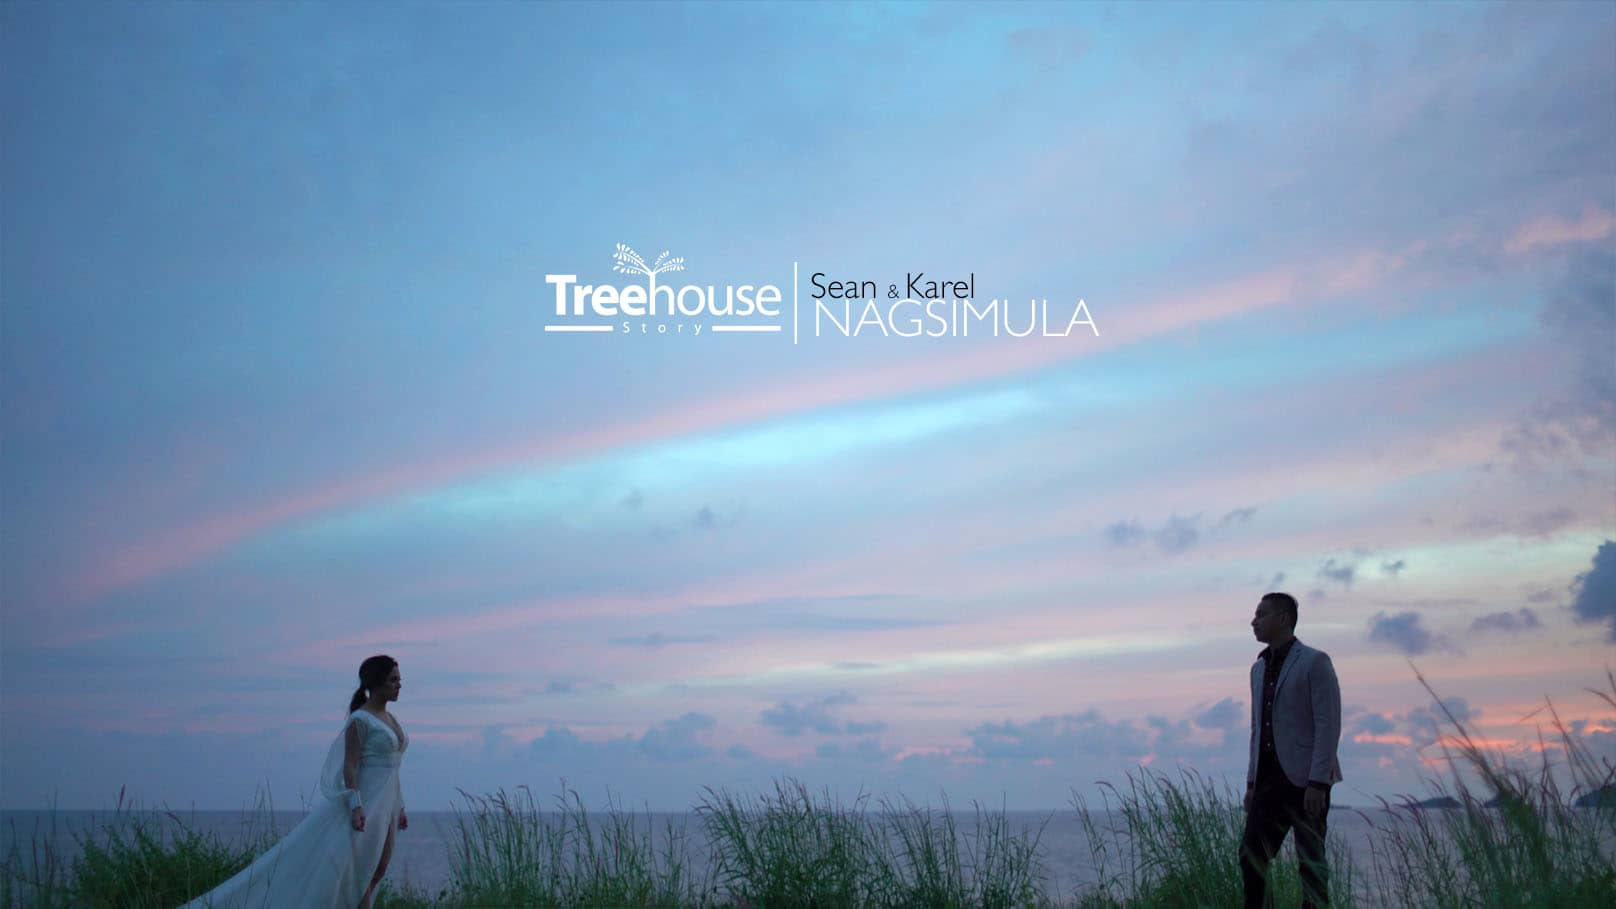 karel-sean-treehouse-story